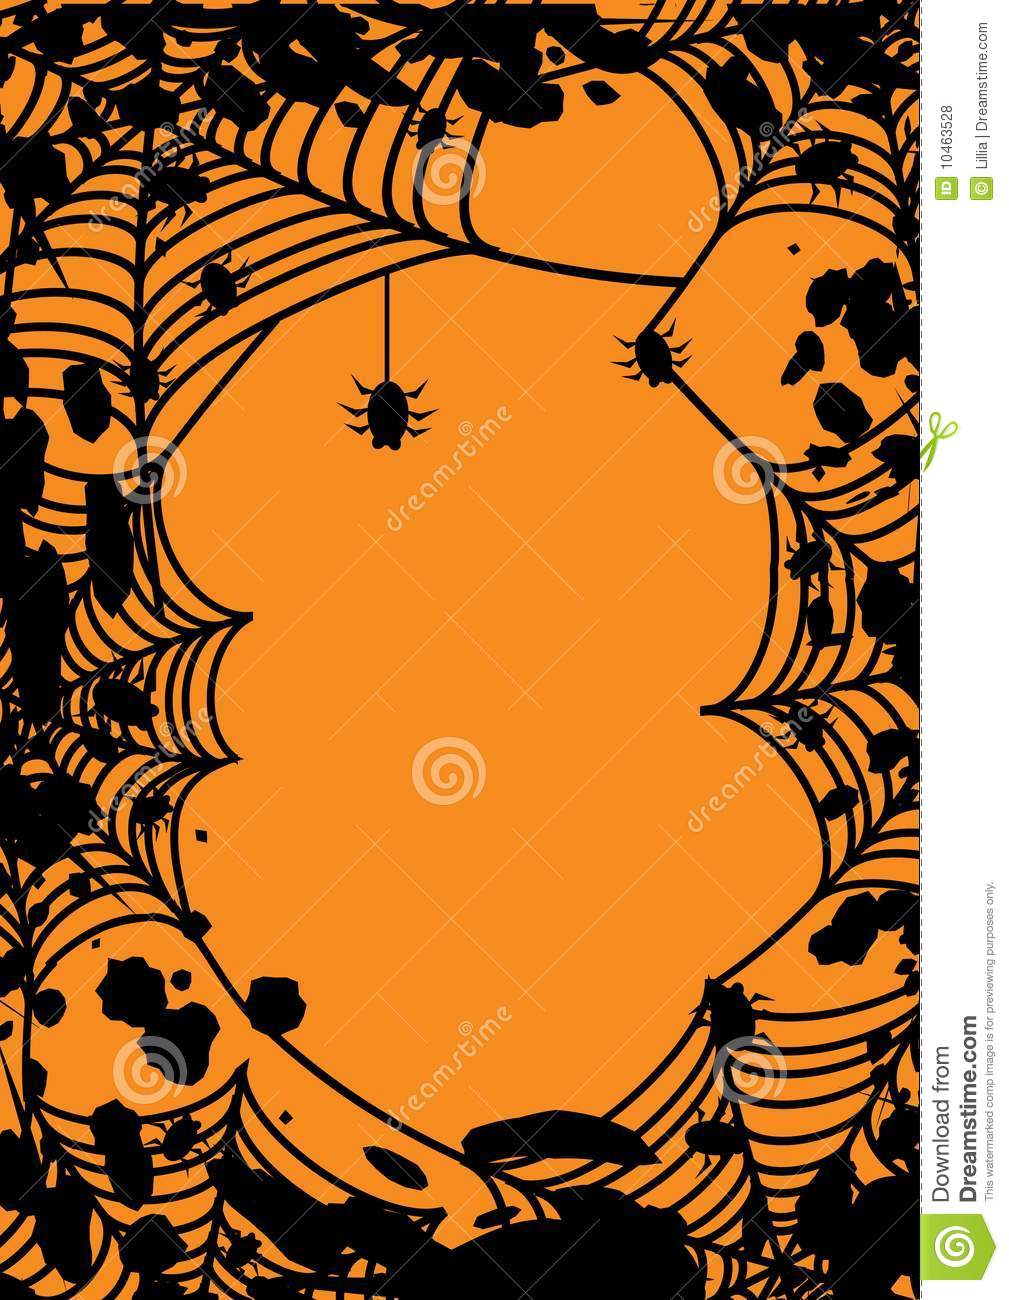 Halloween frame with spiders web stock vector illustration of halloween frame with spider s web jeuxipadfo Choice Image